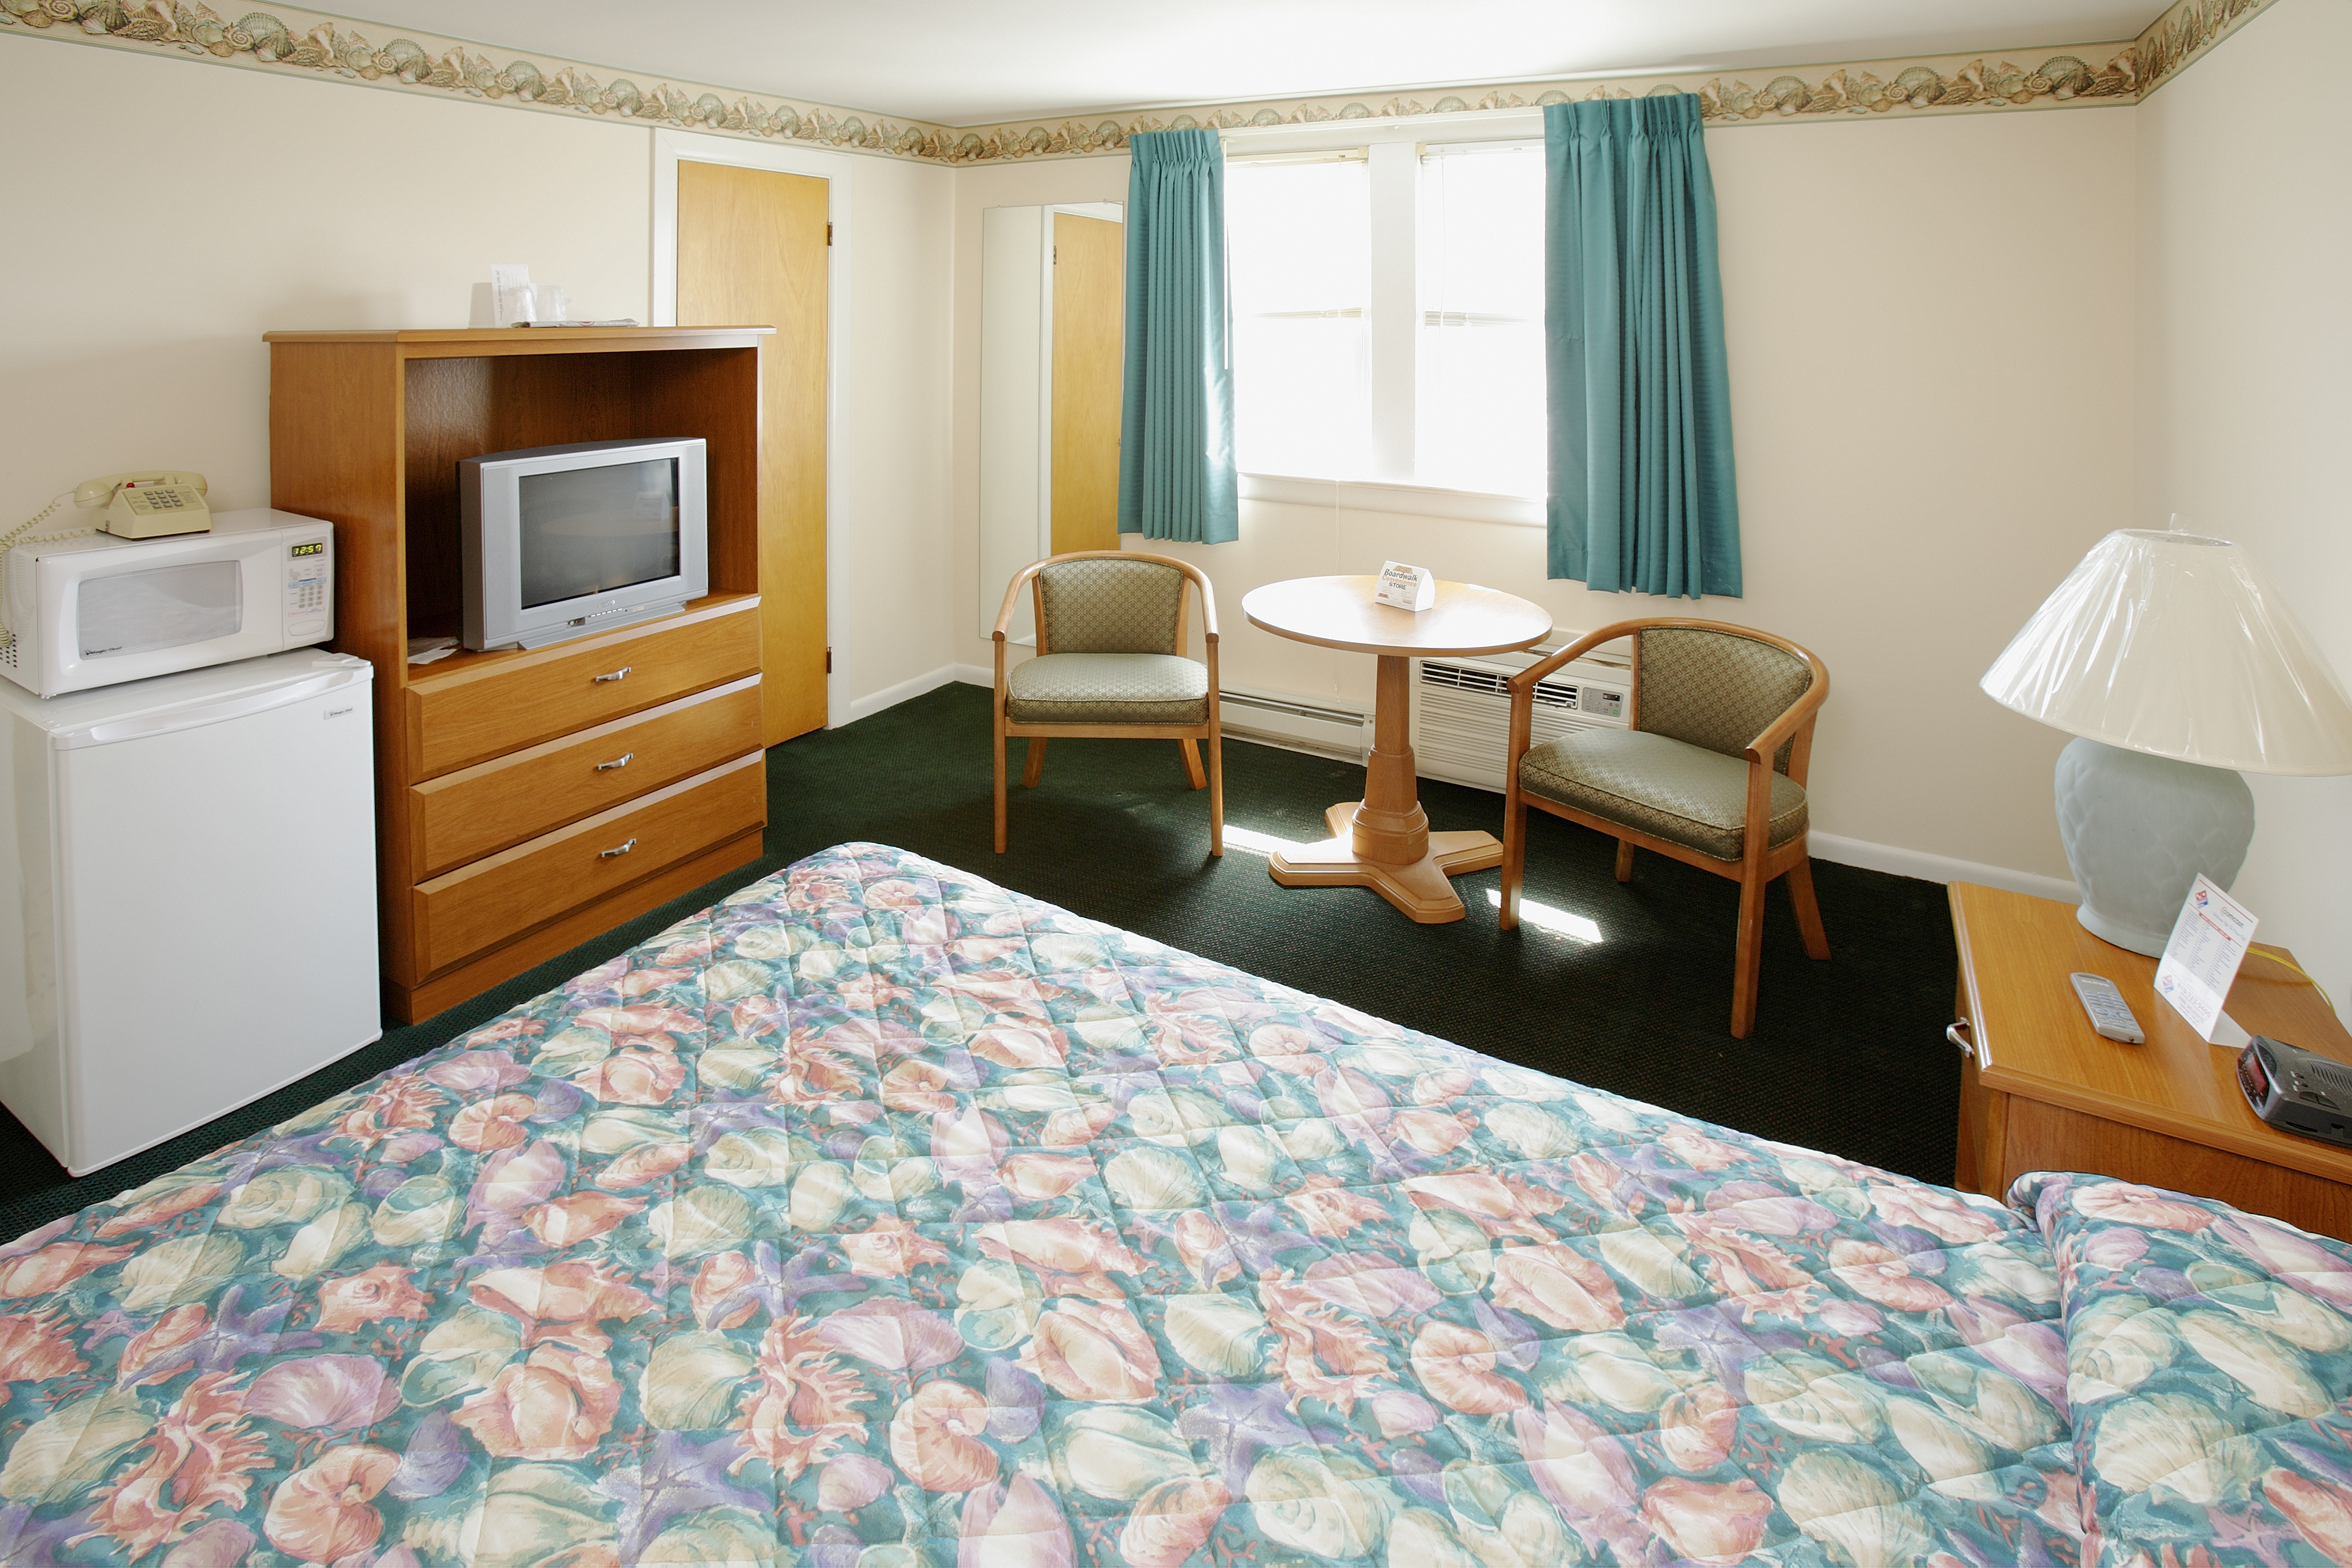 bedroom with queen bed, small fridge, microwave and tv